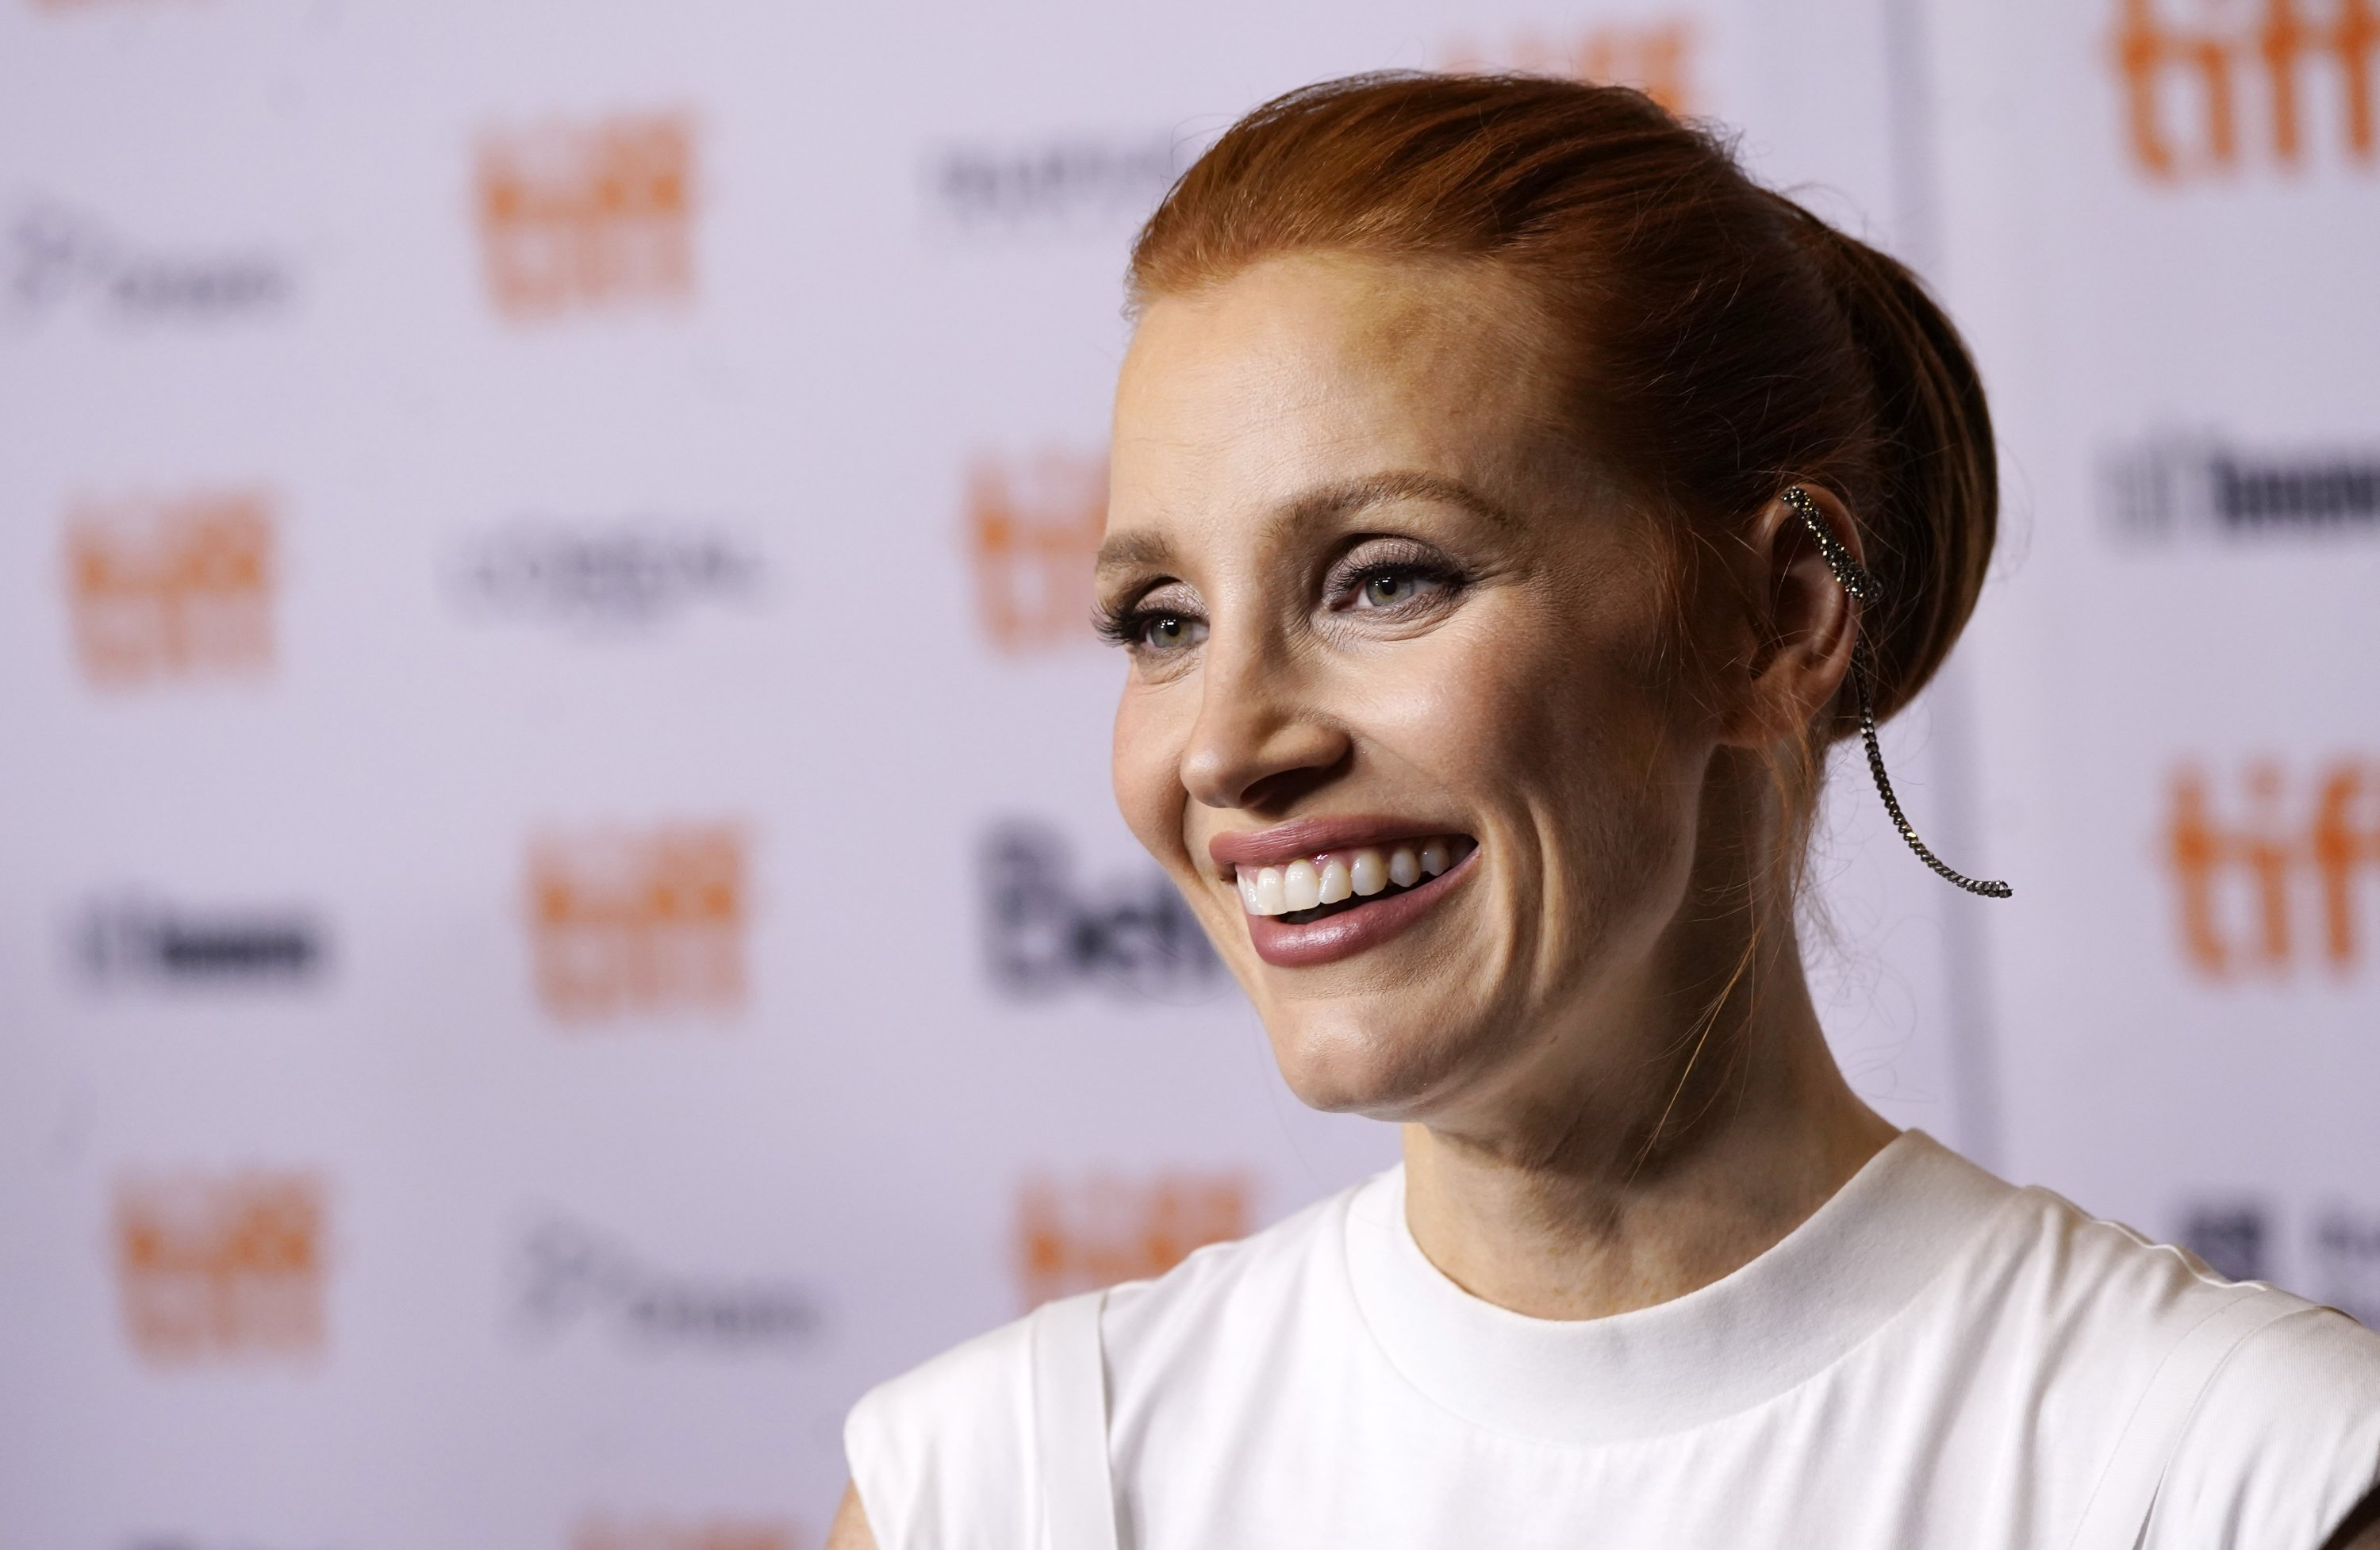 Jessica Chastain, a cast member in 'The Eyes of Tammy Faye,' smiles at the premiere of the film at the 2021 Toronto International Film Festival, Toronto, Canada, Sept. 12, 2021. (AP Photo)